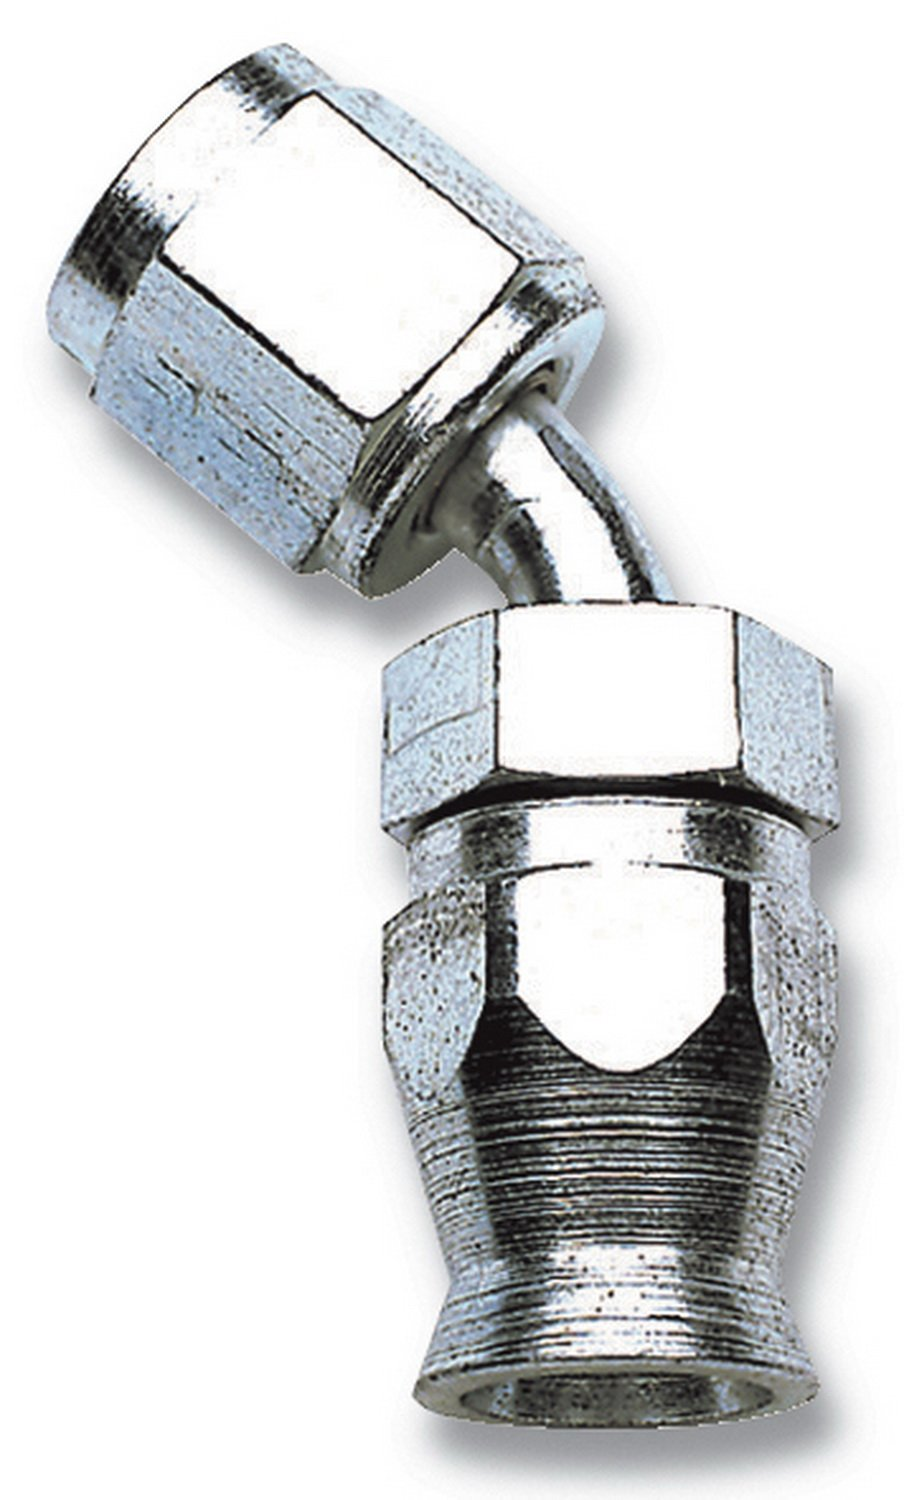 Russell 620431 - Russell Powerflex Brake Hose End Fittings